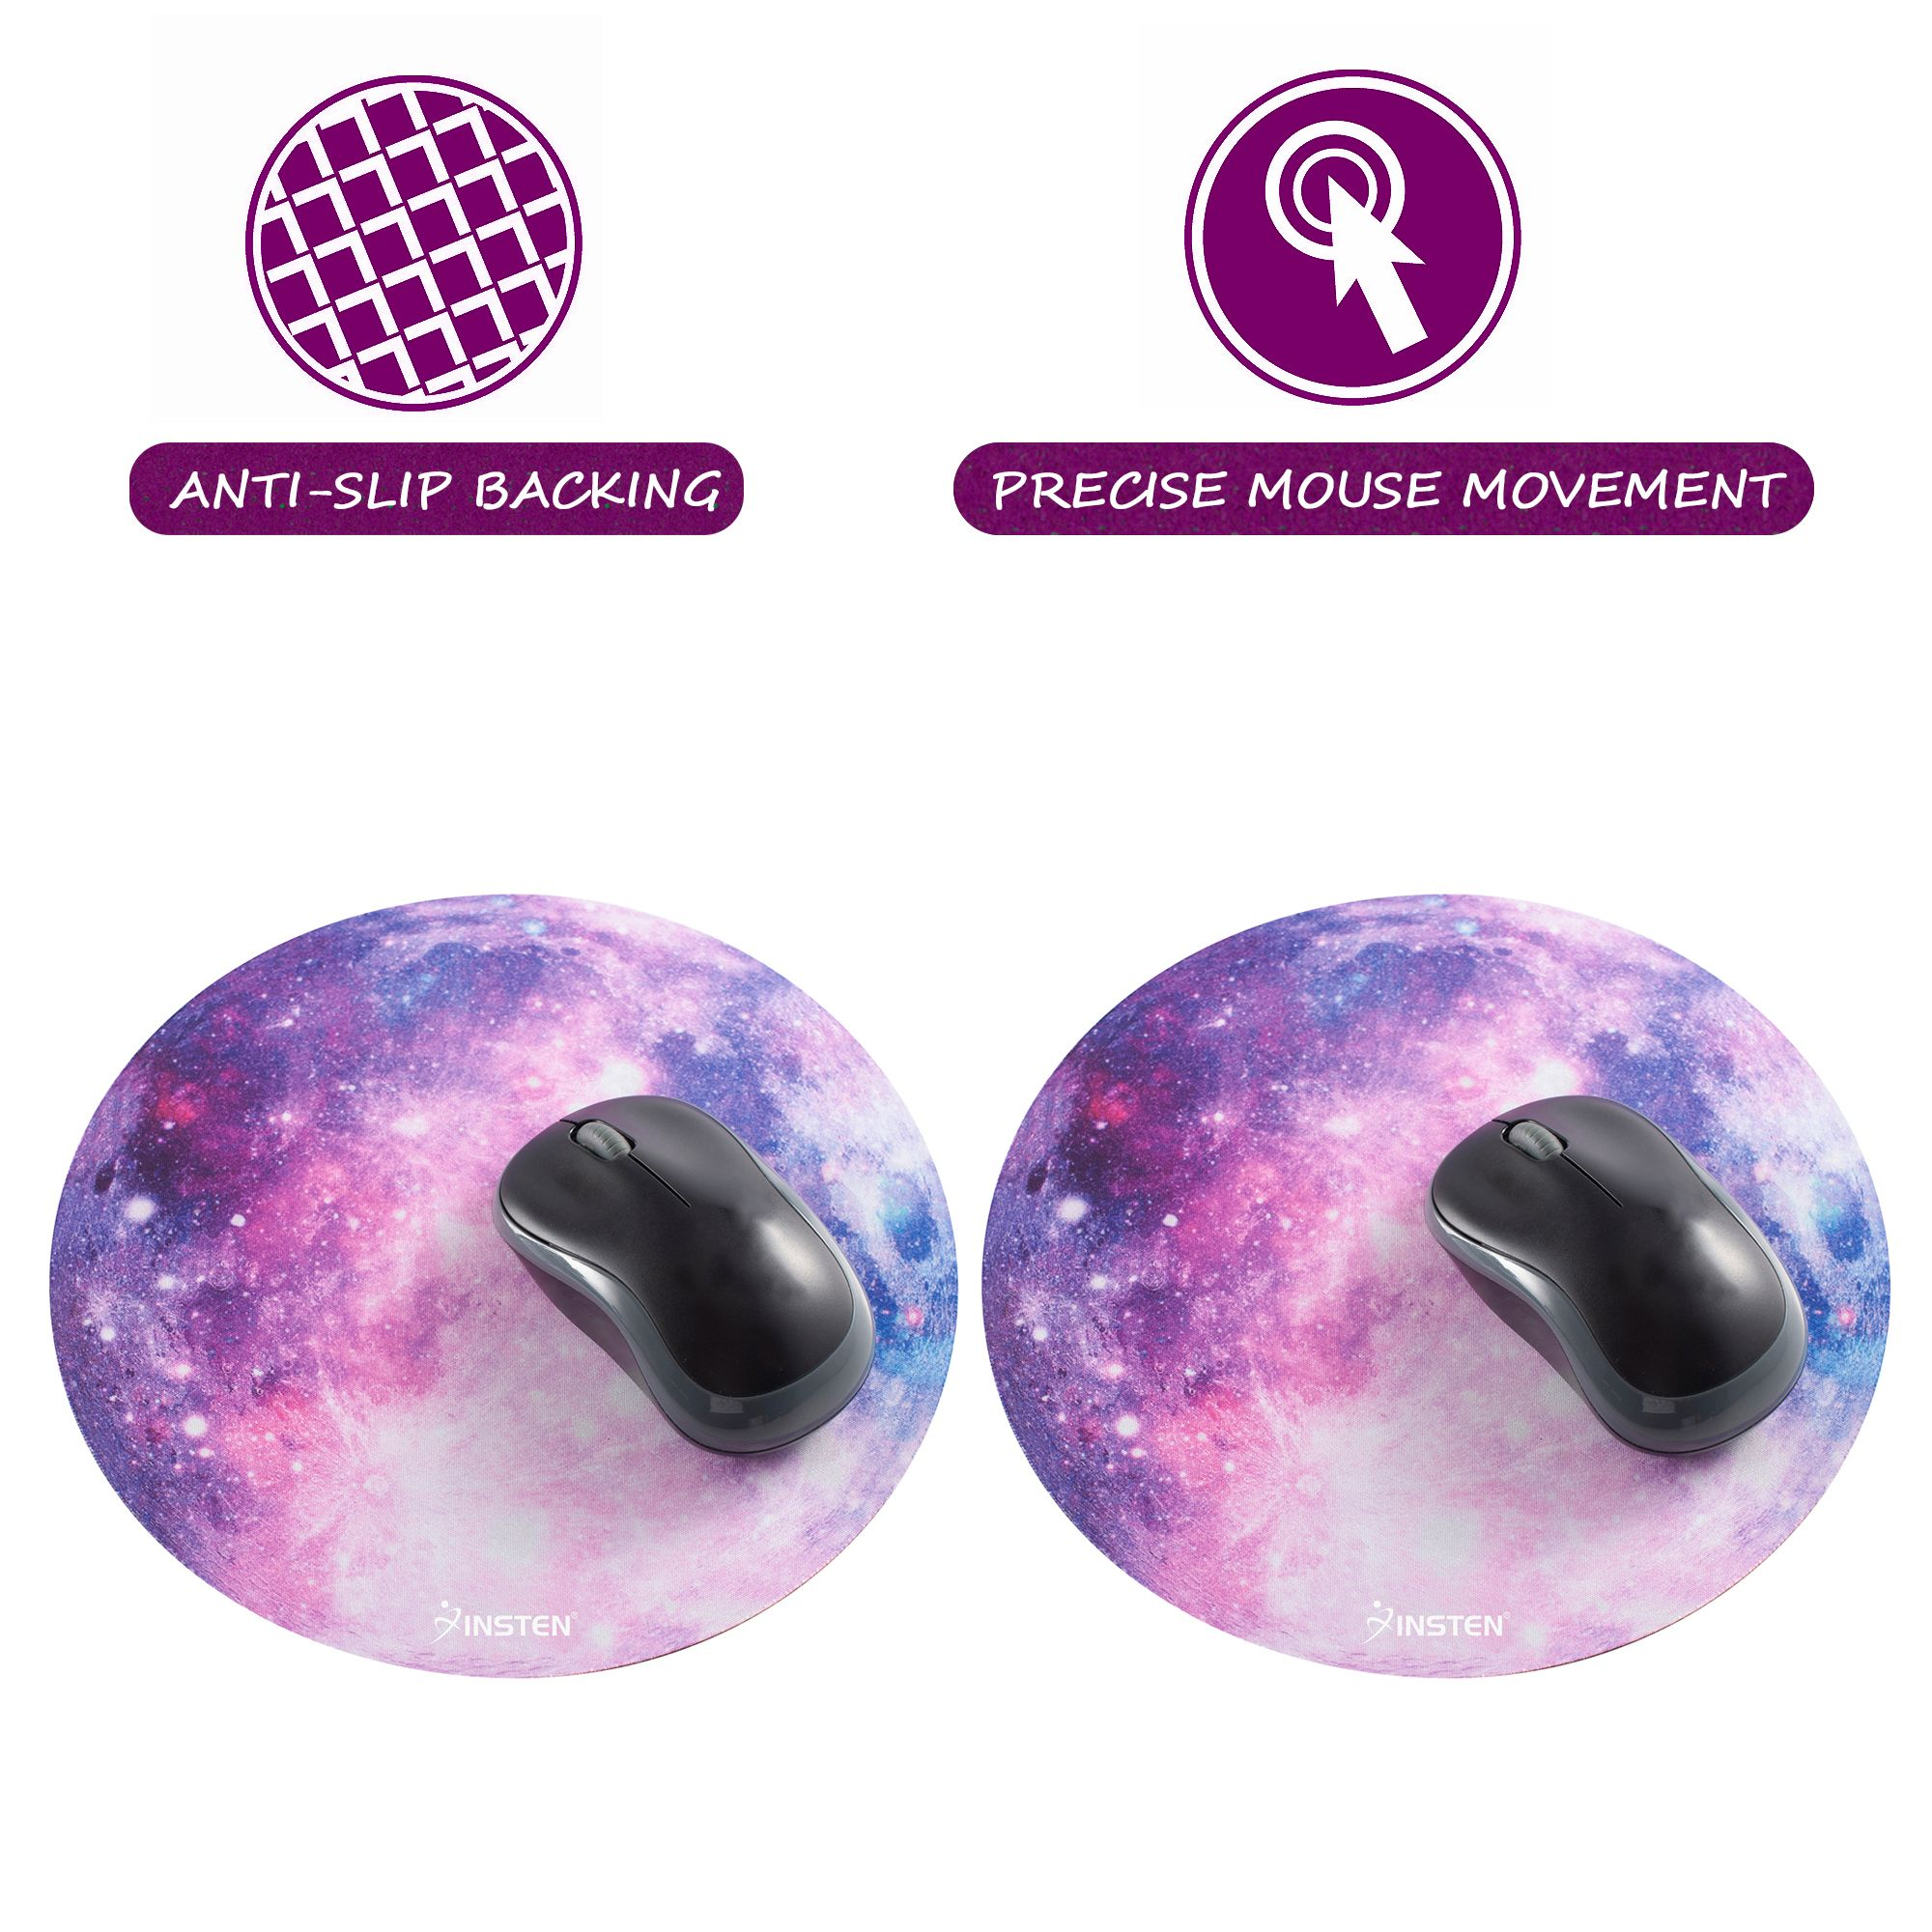 "Insten 2-pack Galactic Space Design Round Galaxy Mouse Mat Pad Anti-Slip Backing and Silky Smooth Surface 2mm Ultra Thick Diameter: 8.46"" For Laptop PC Gaming Home Office - Purple Nebula"